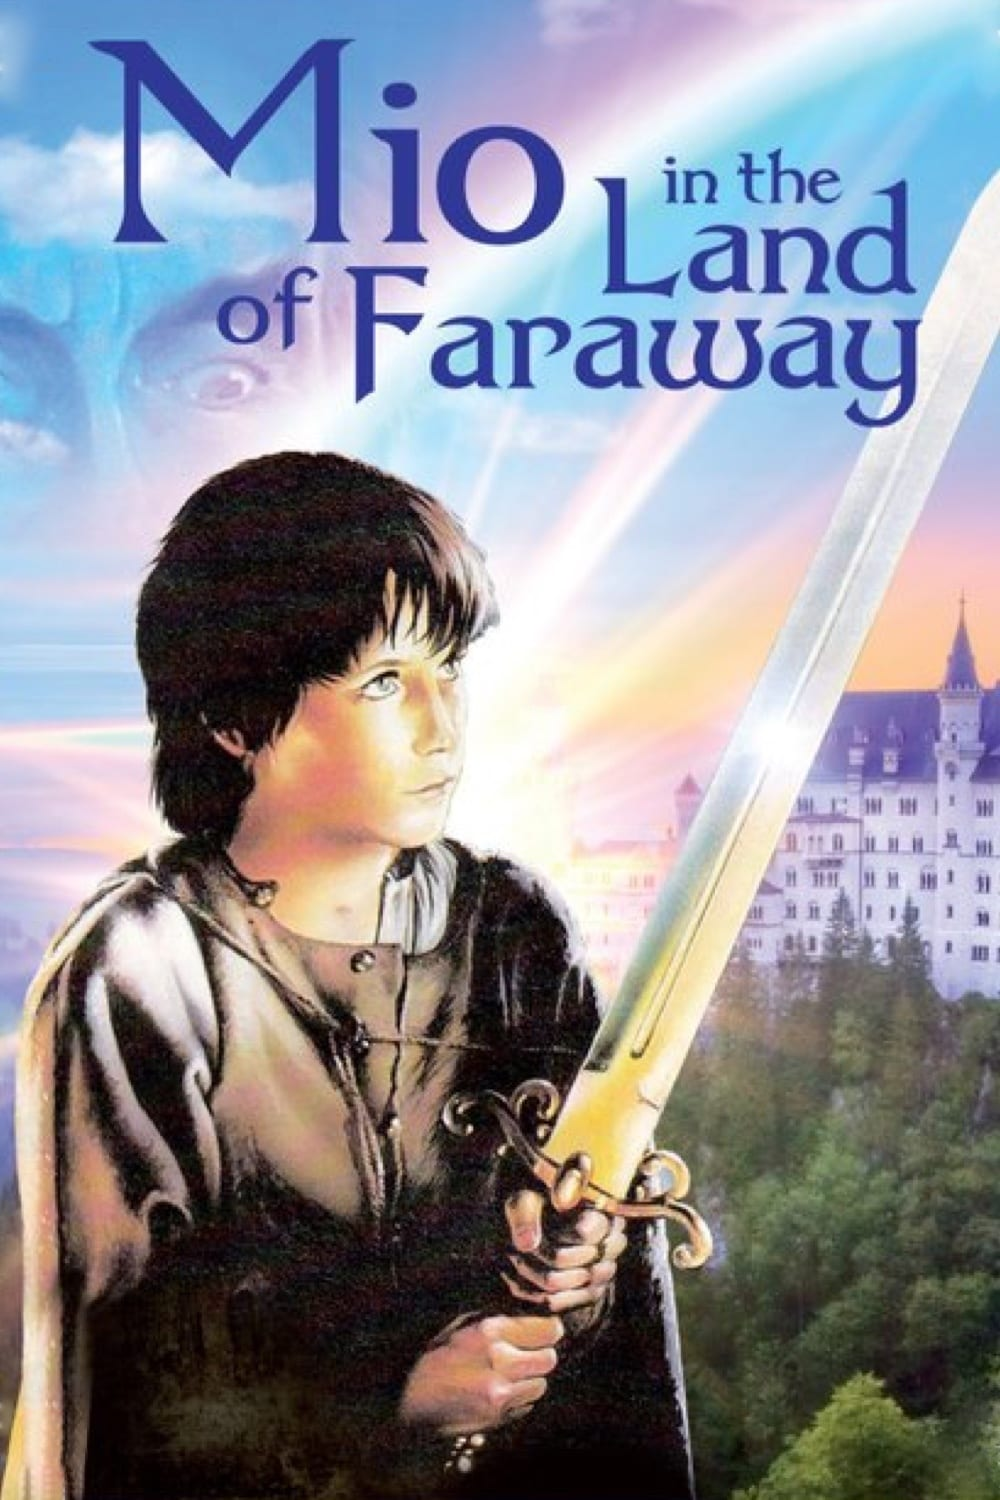 Mio in the Land of Faraway (1987)